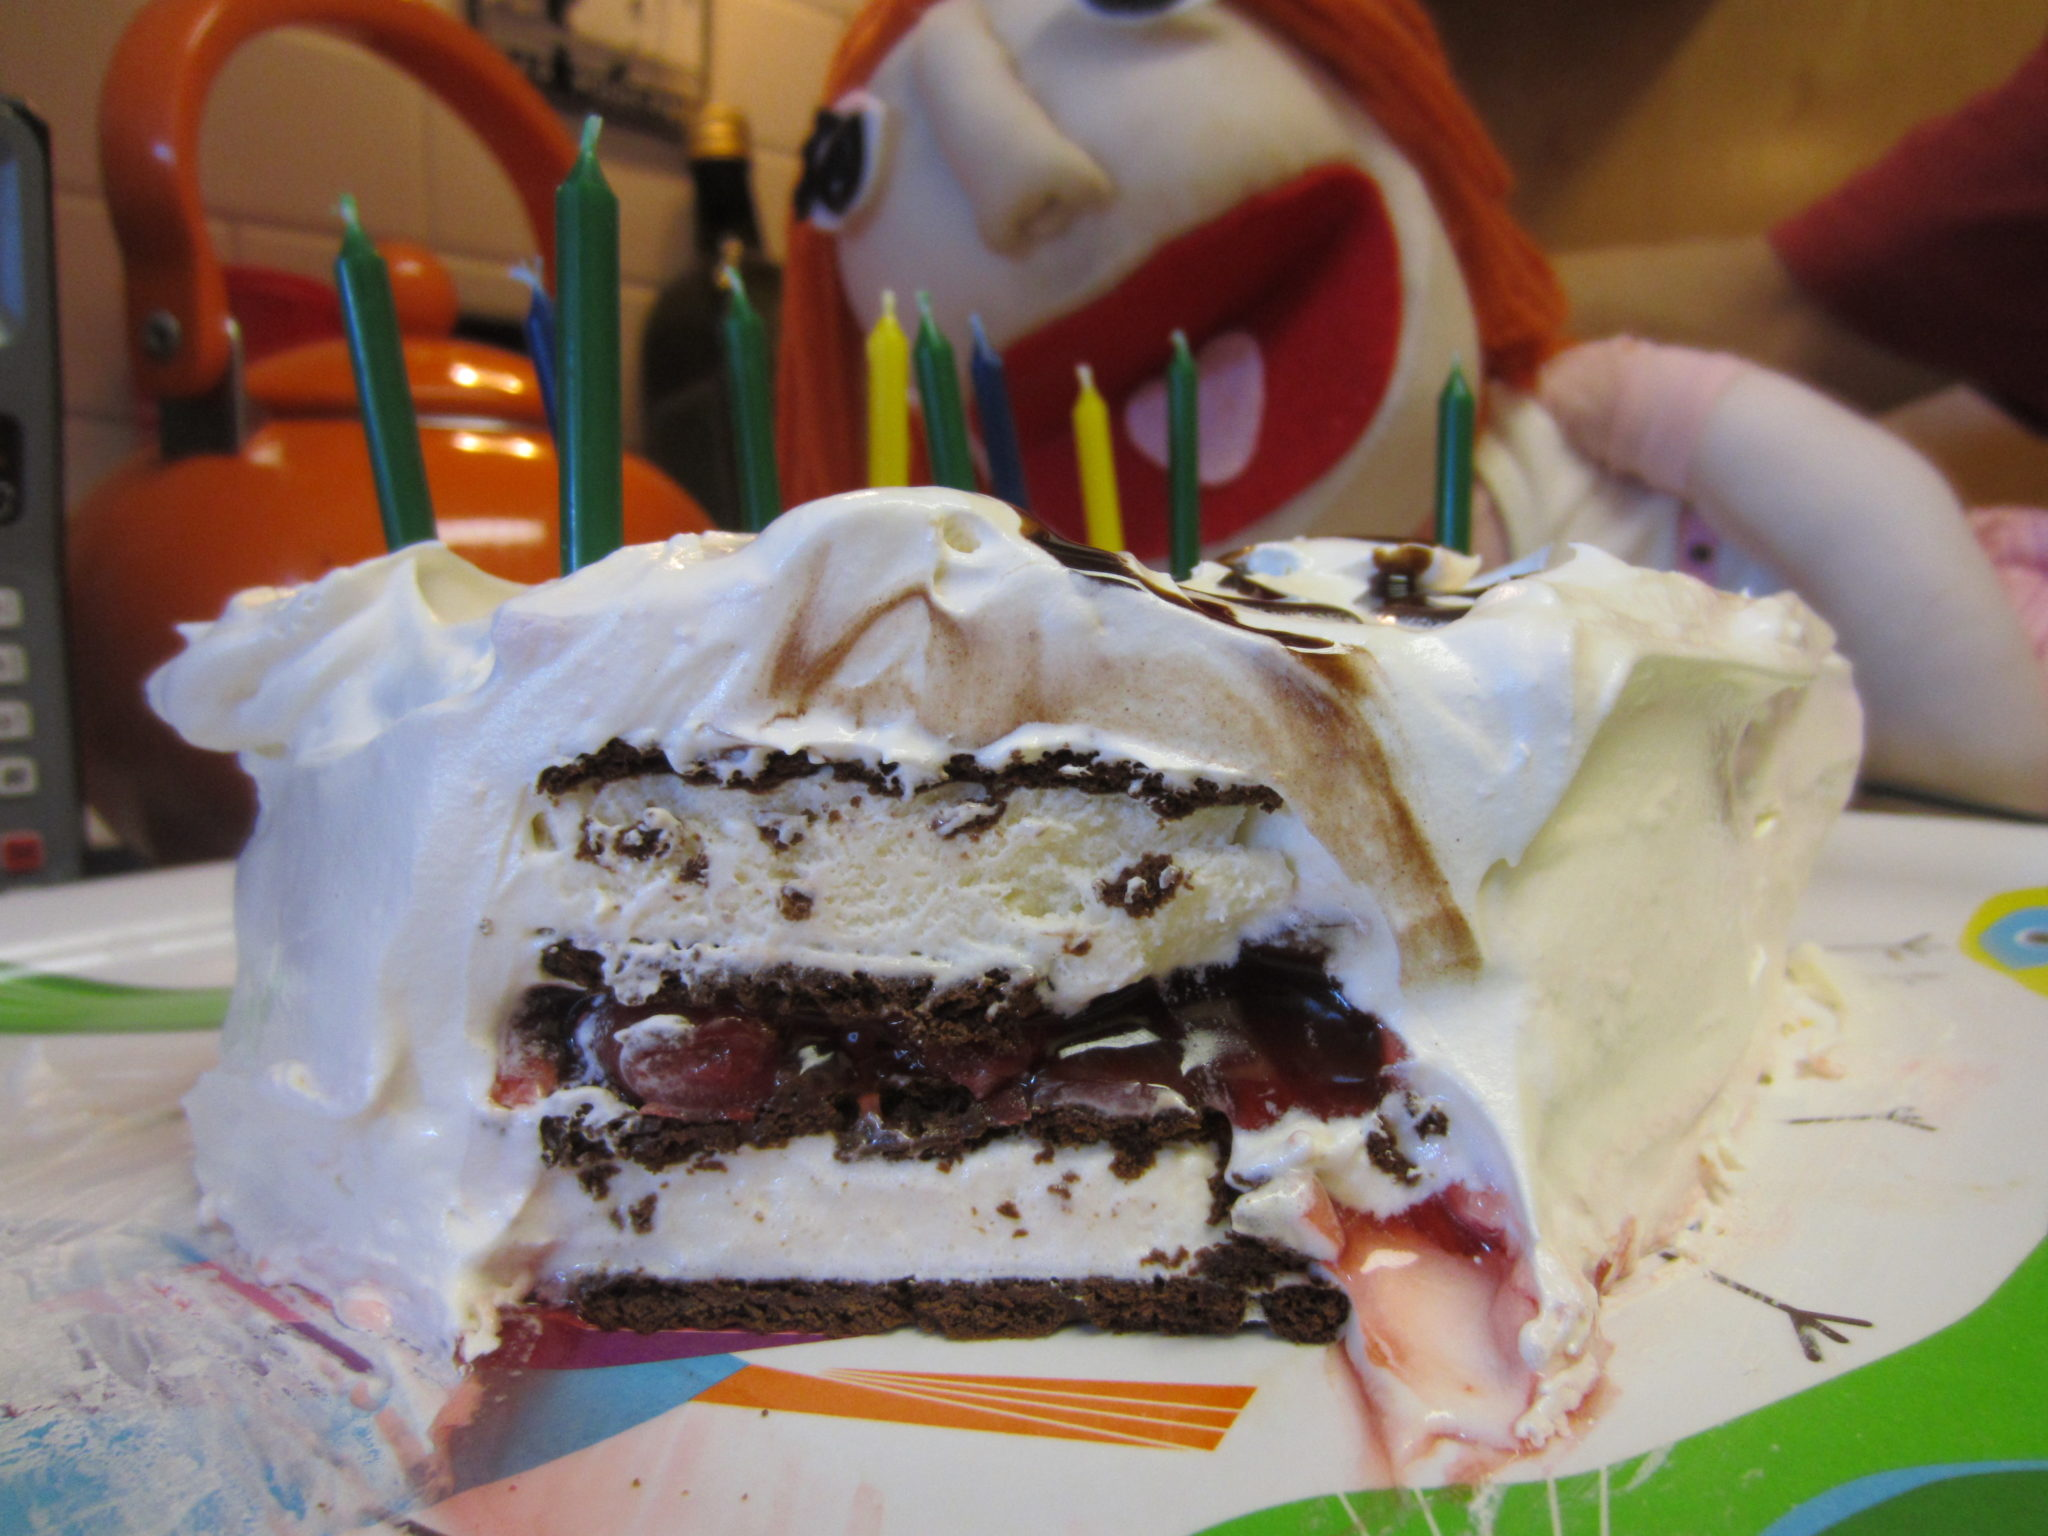 A slice of ice cream sandwich cake